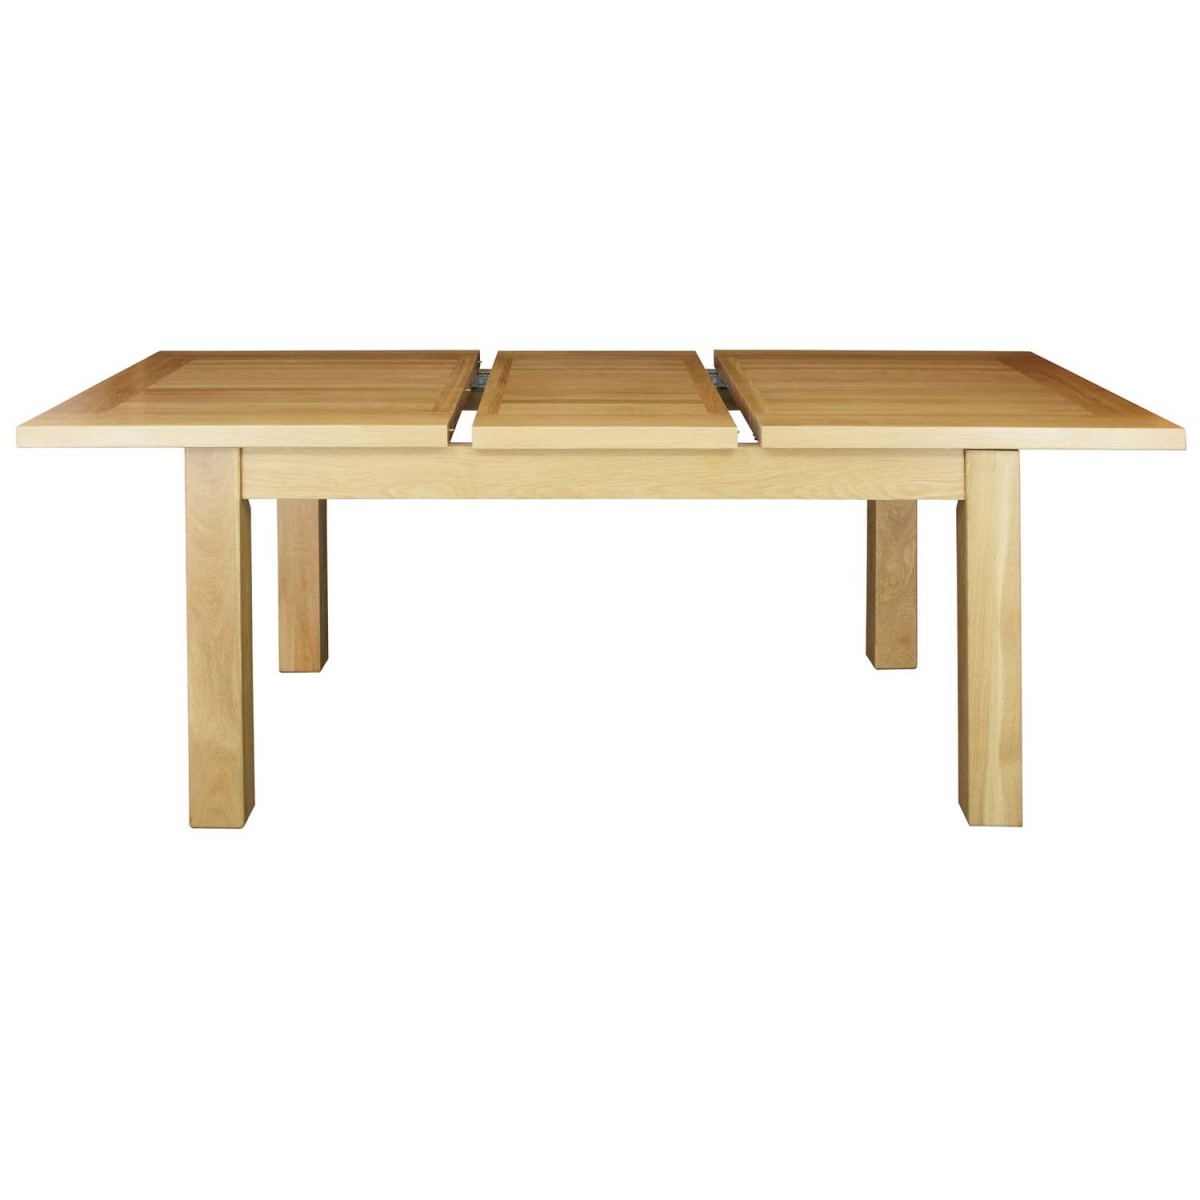 Extending dining tables dining solid oak for Solid oak dining table